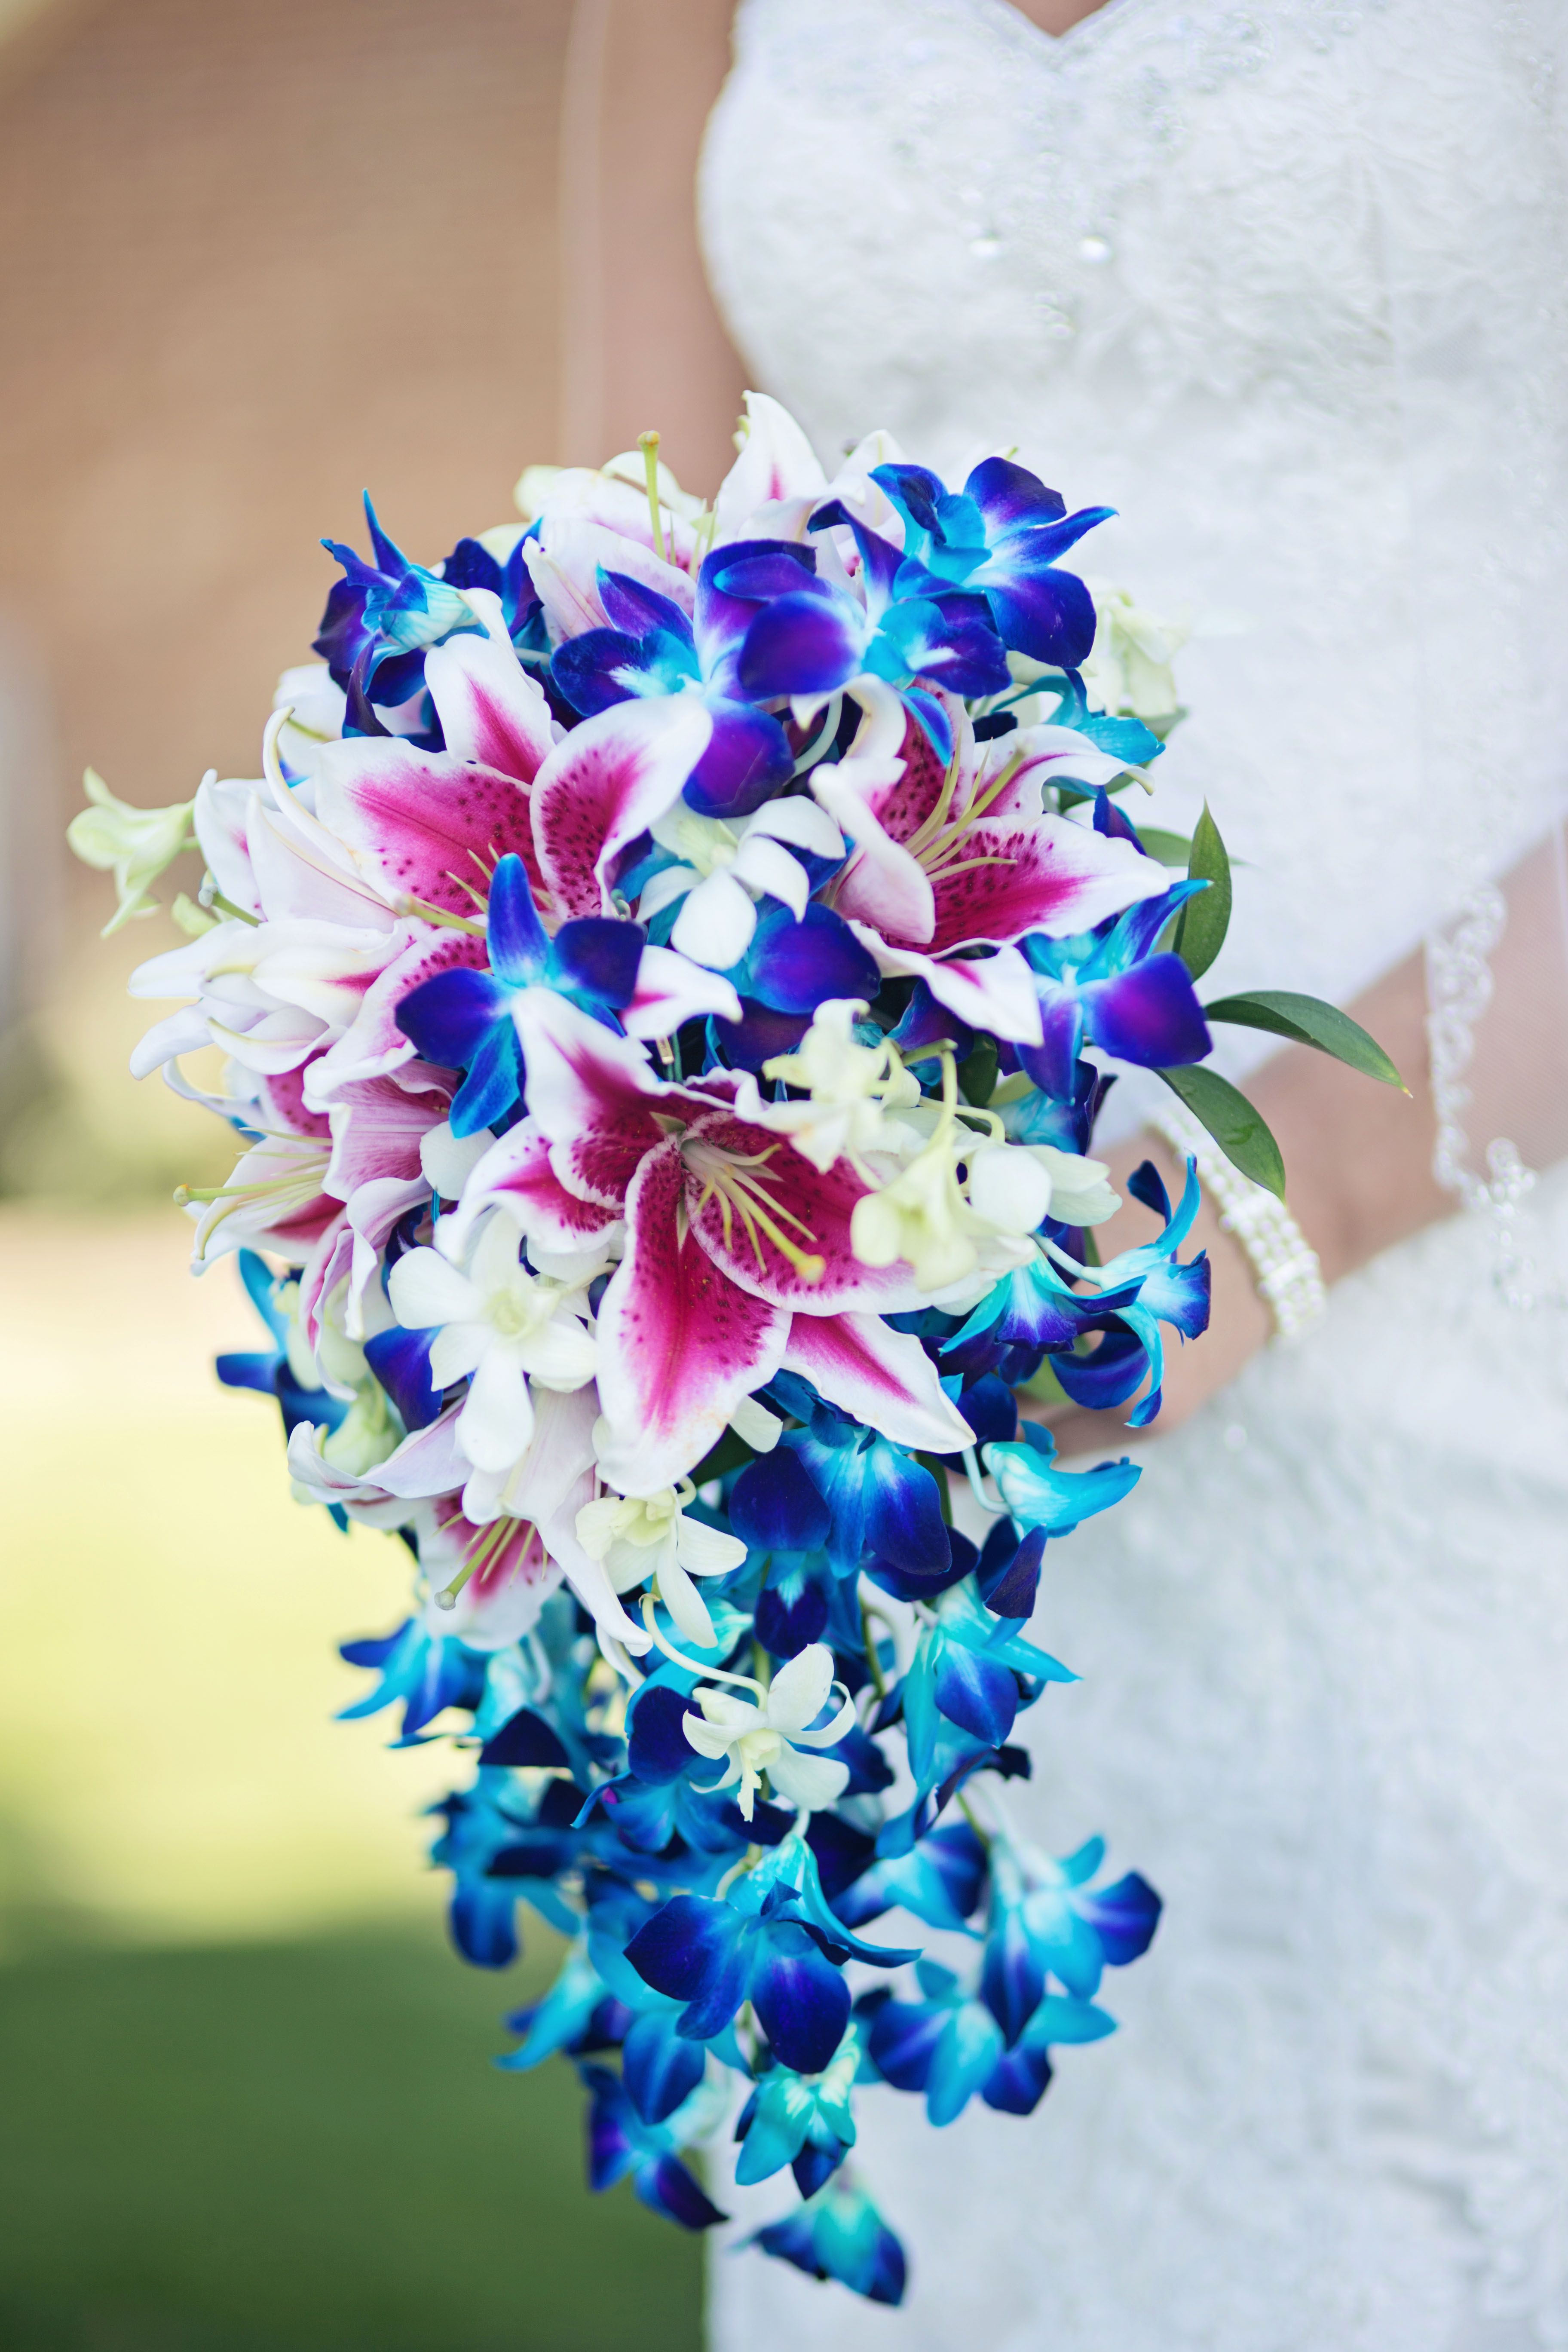 Blue dendrobium orchids with pink lilies for bridal bouquet blue